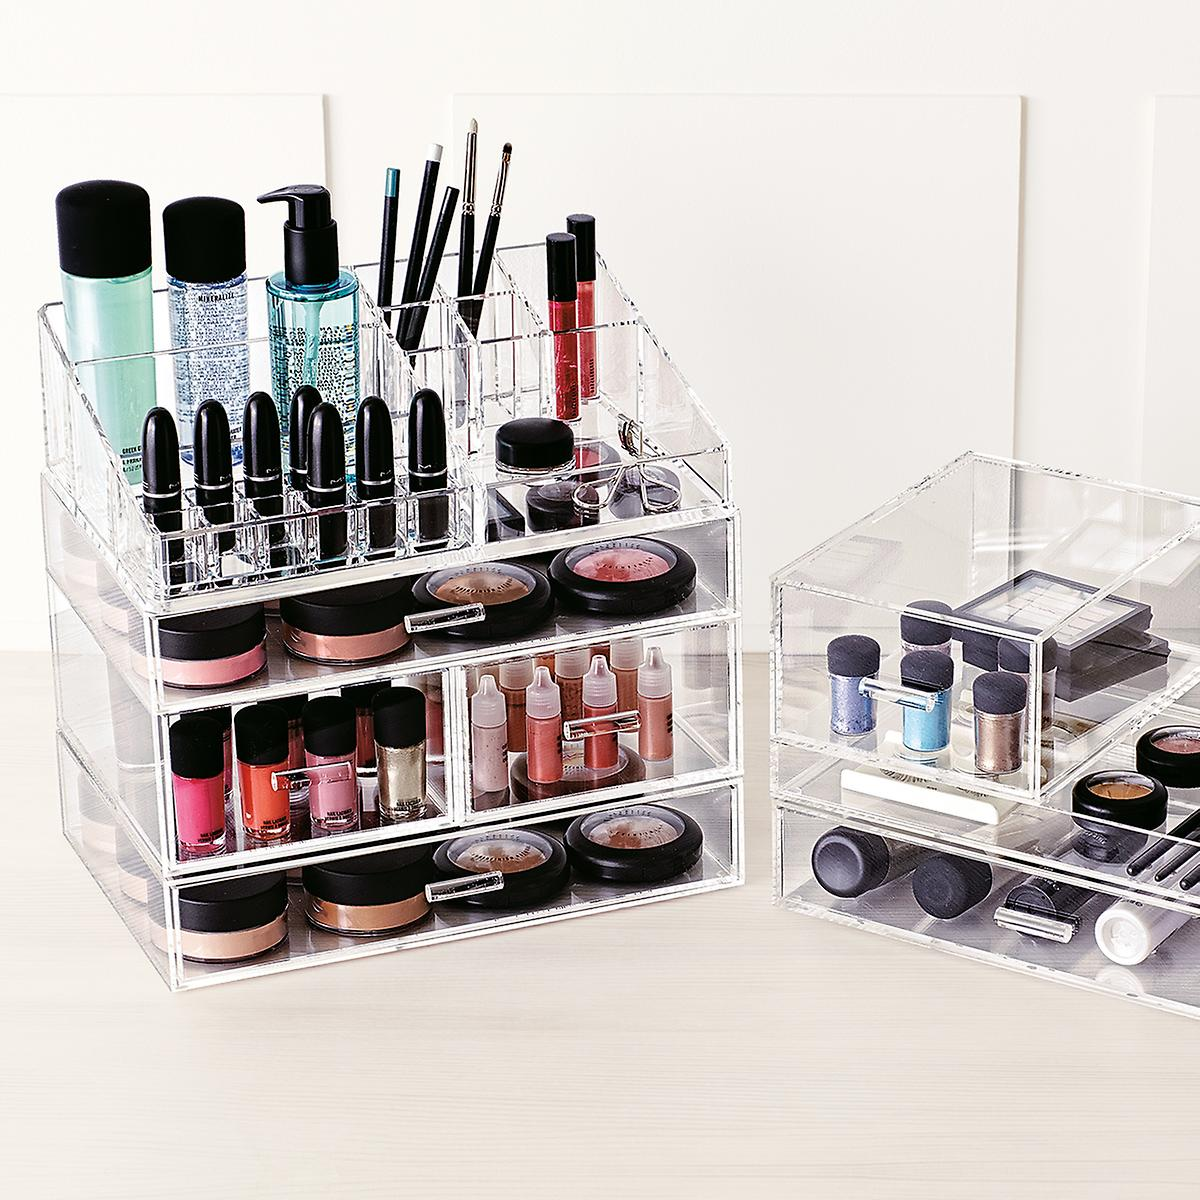 Selecting The Best Makeup Organizer